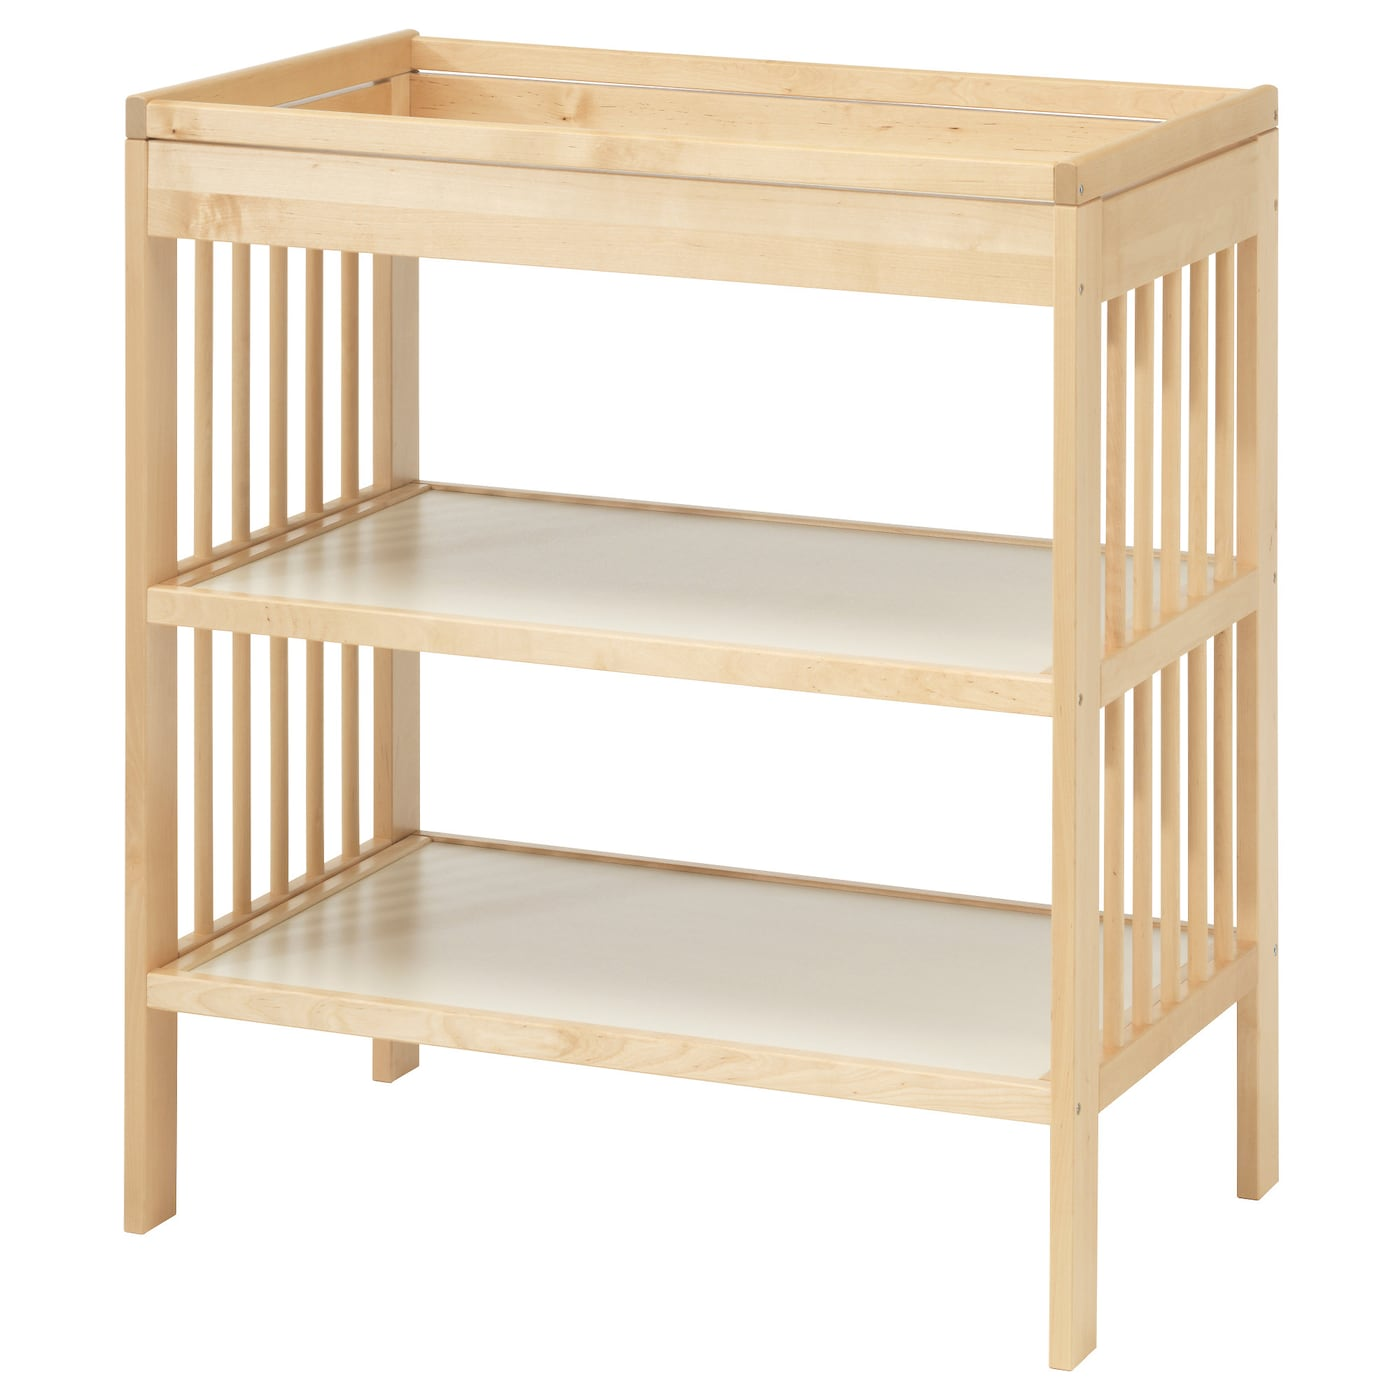 Friheten Ikea Verpackungsmaße ~ IKEA GULLIVER changing table Comfortable height for changing the baby